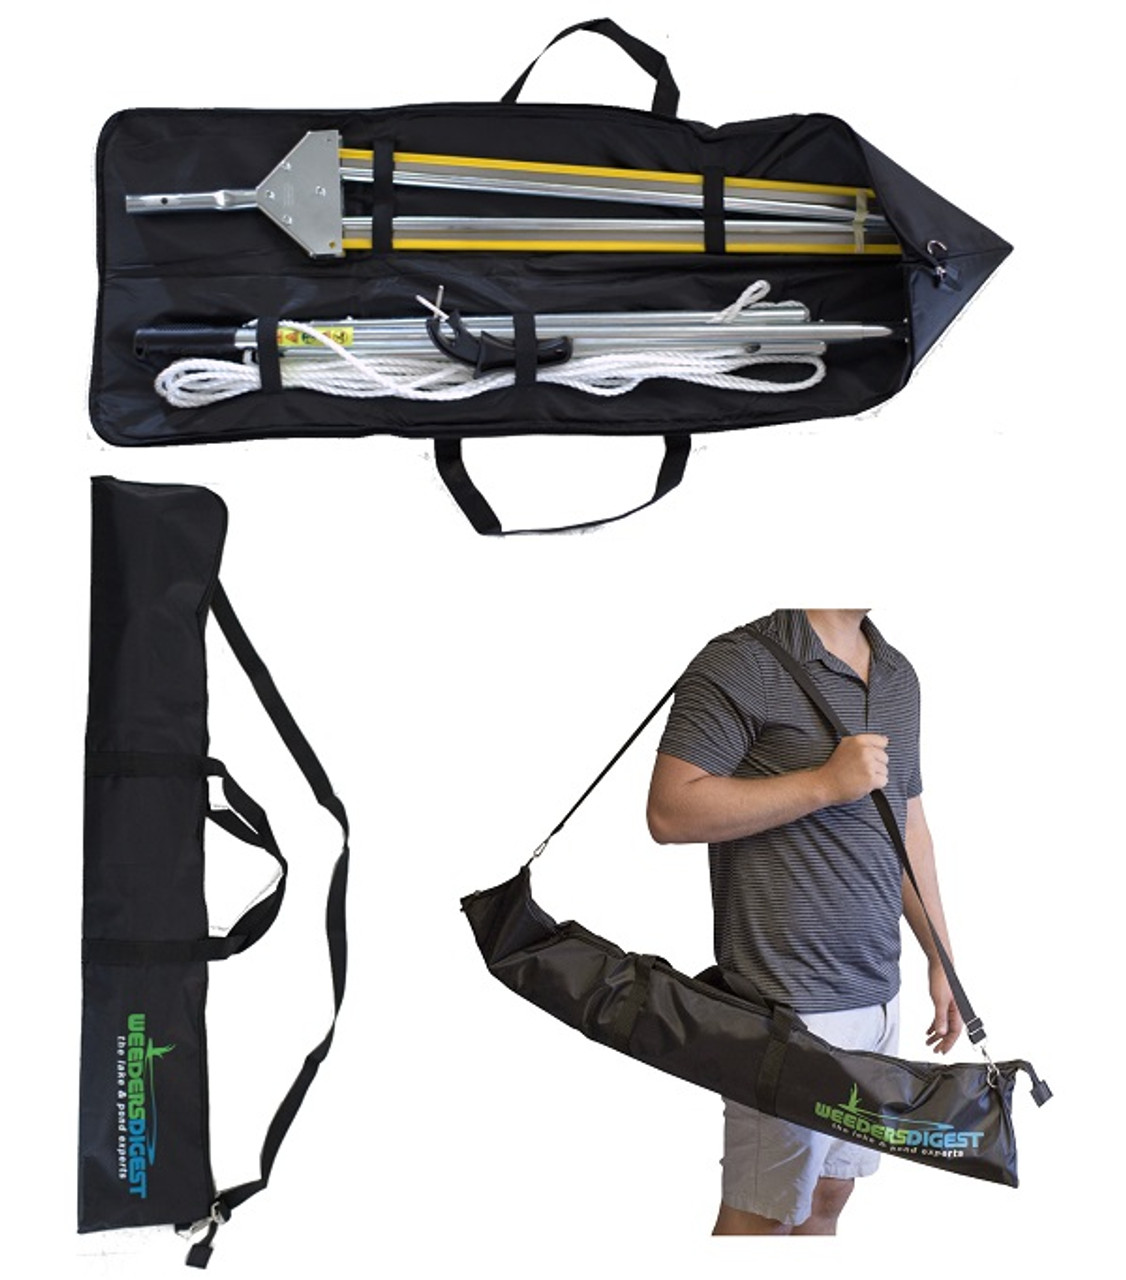 weedshear lake weed cutter plus carrying case